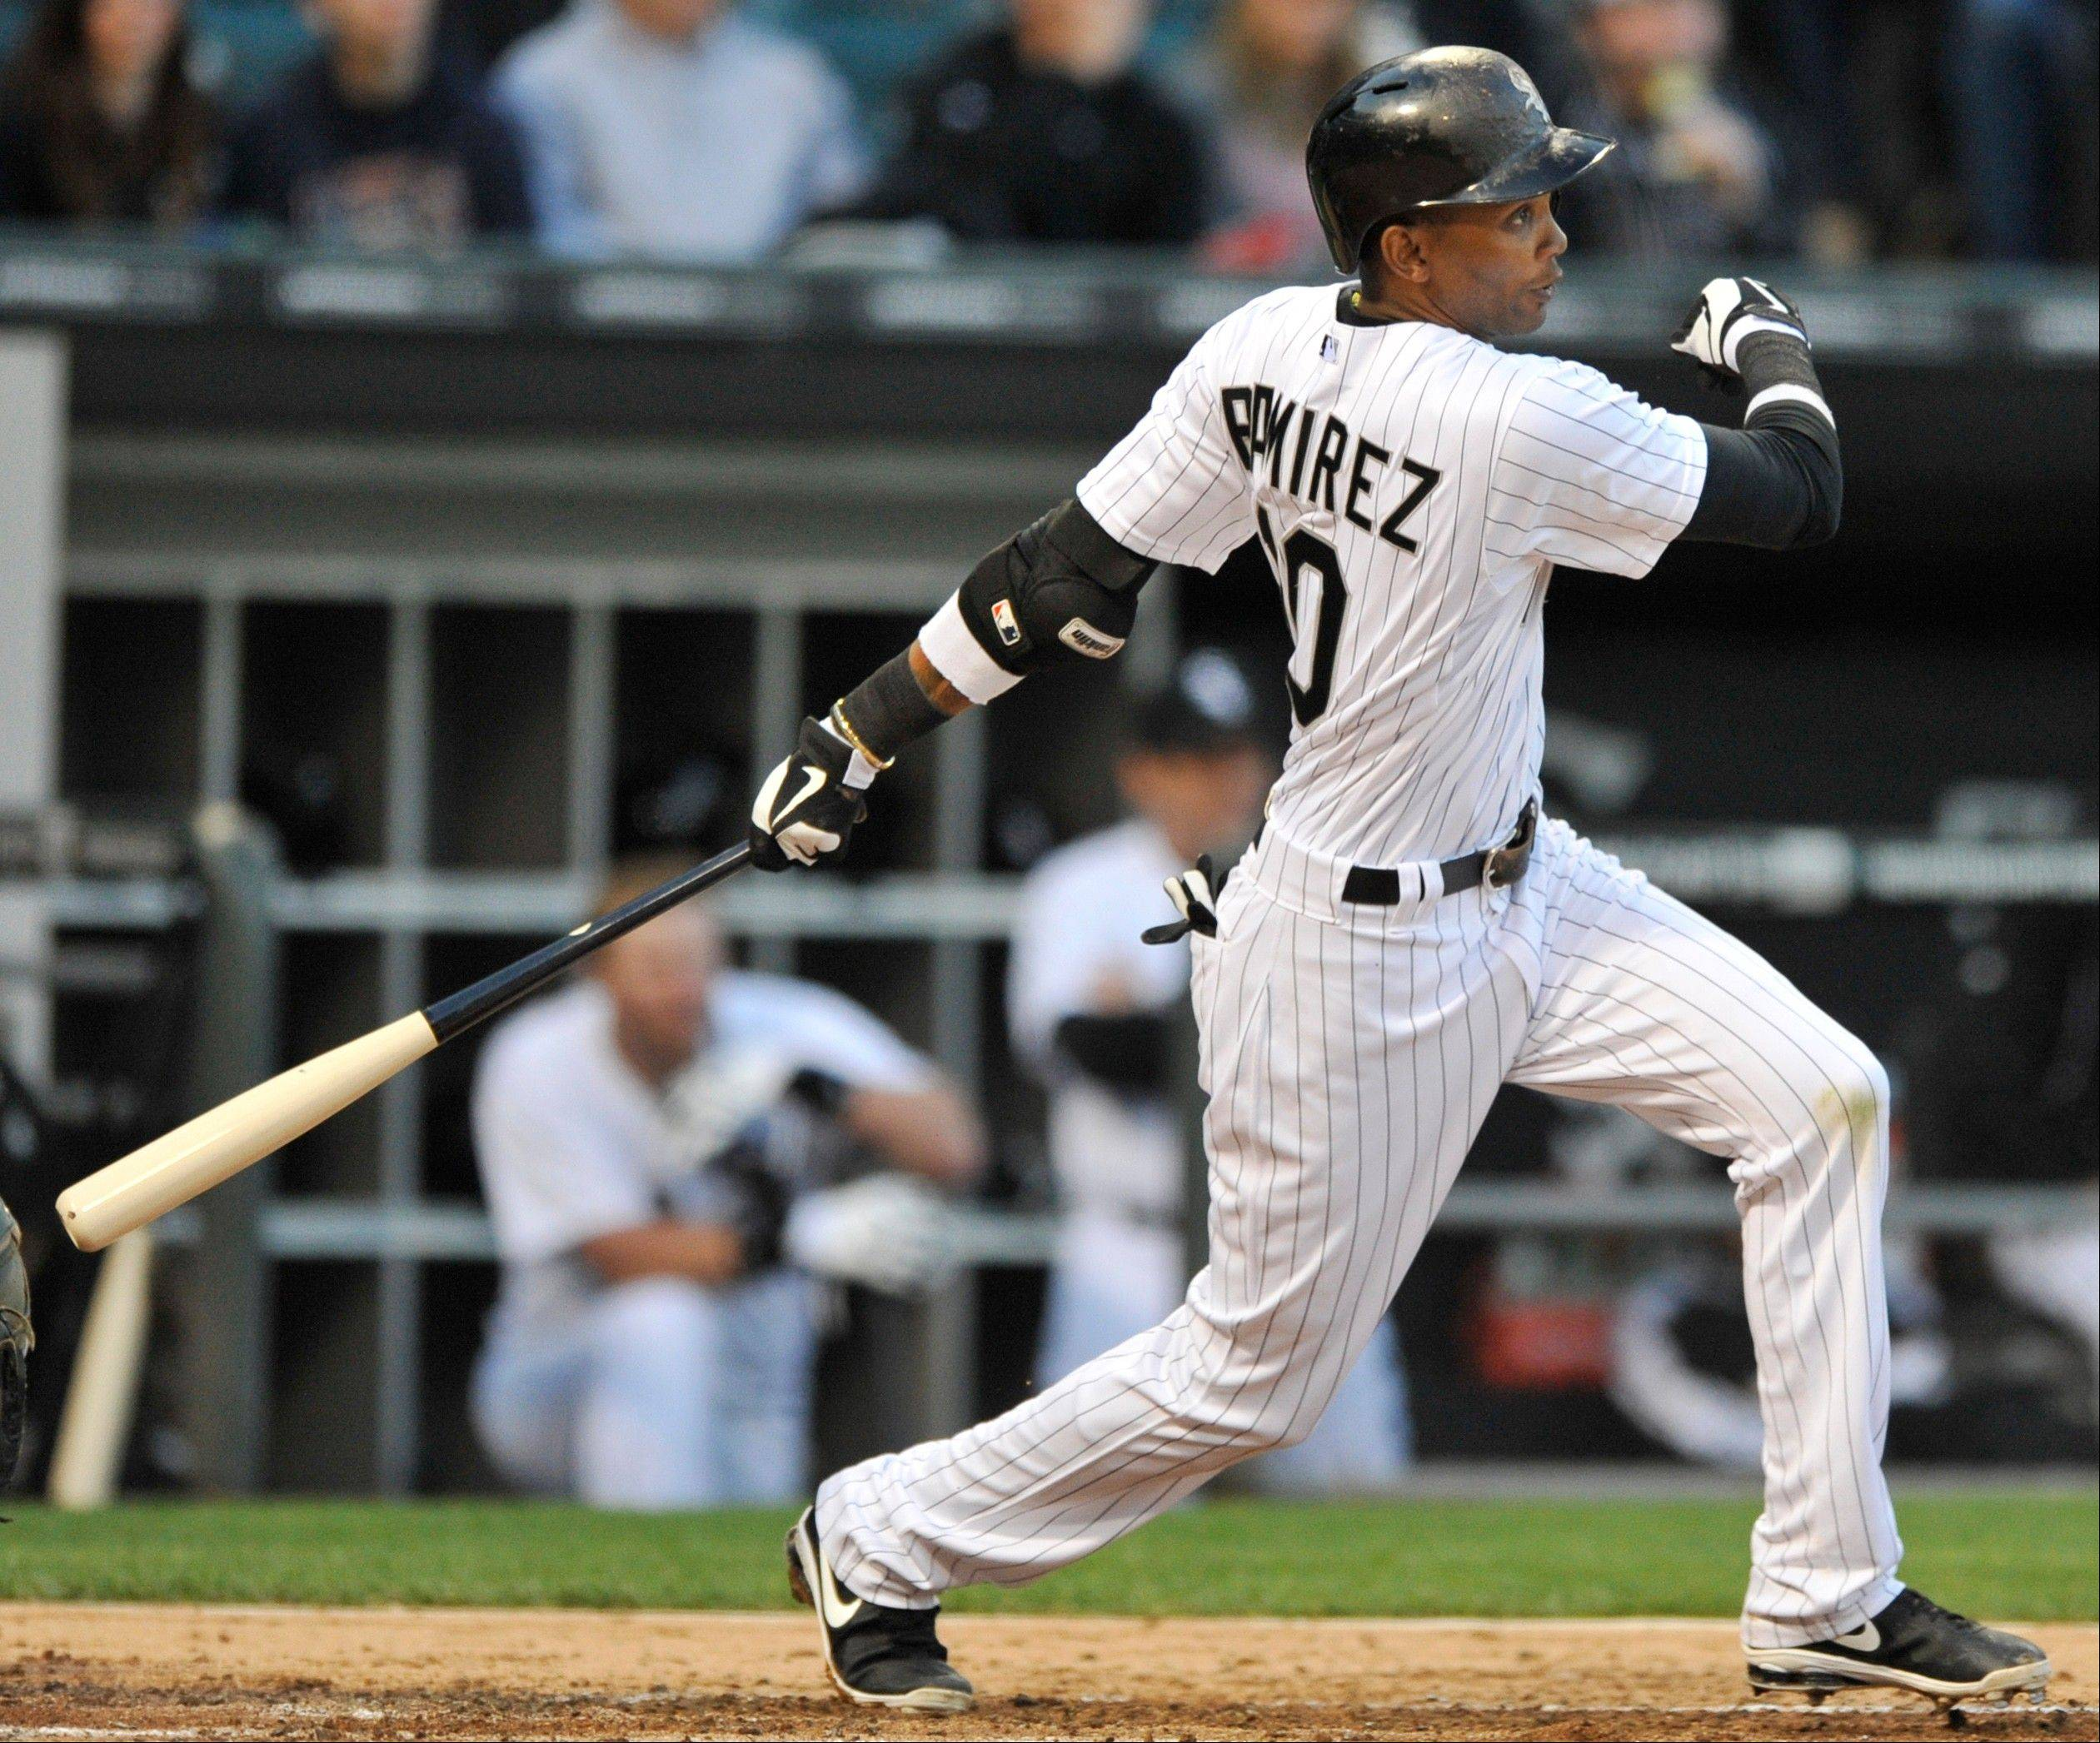 Chicago White Sox's Alexei Ramirez watches his two-run single during the third inning of a baseball game against the Oakland Athletics in Chicago, Thursday, June 6, 2013.